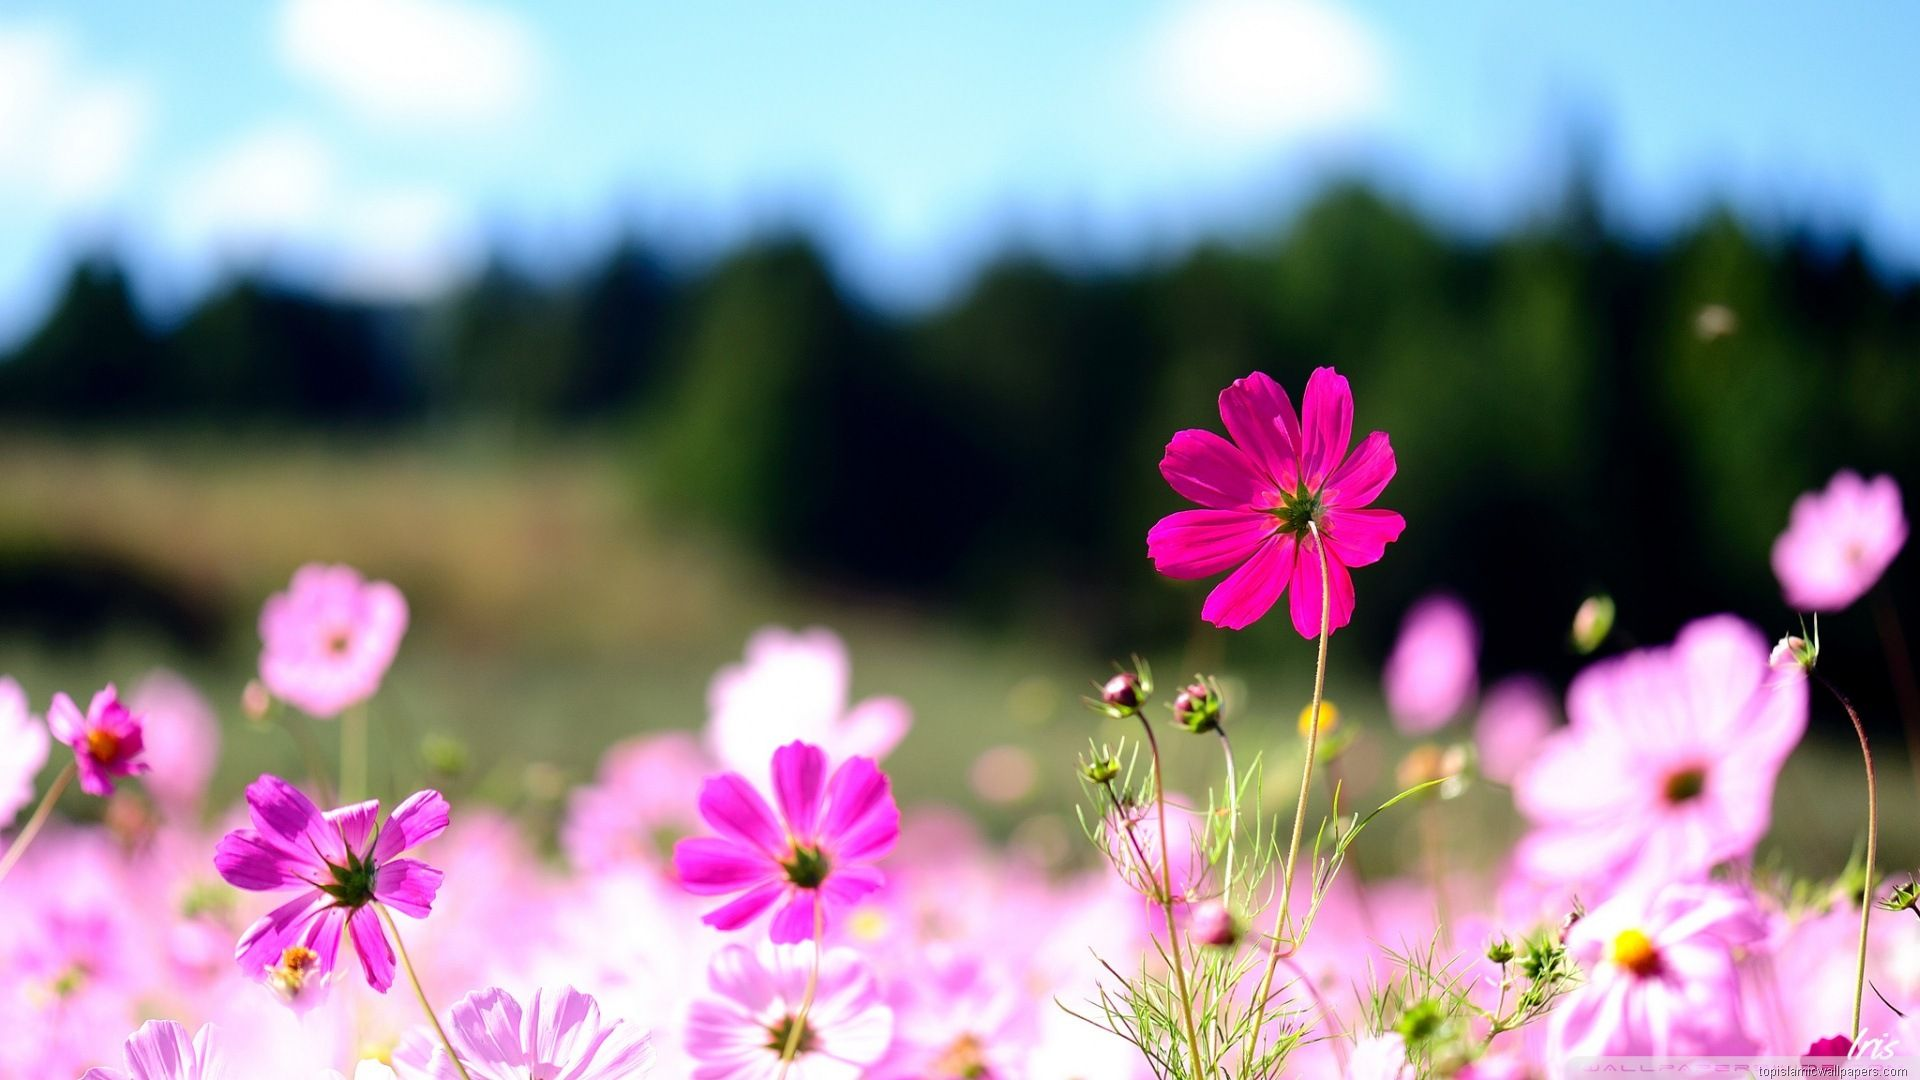 Nice Pink Flowers With Landscape In Background